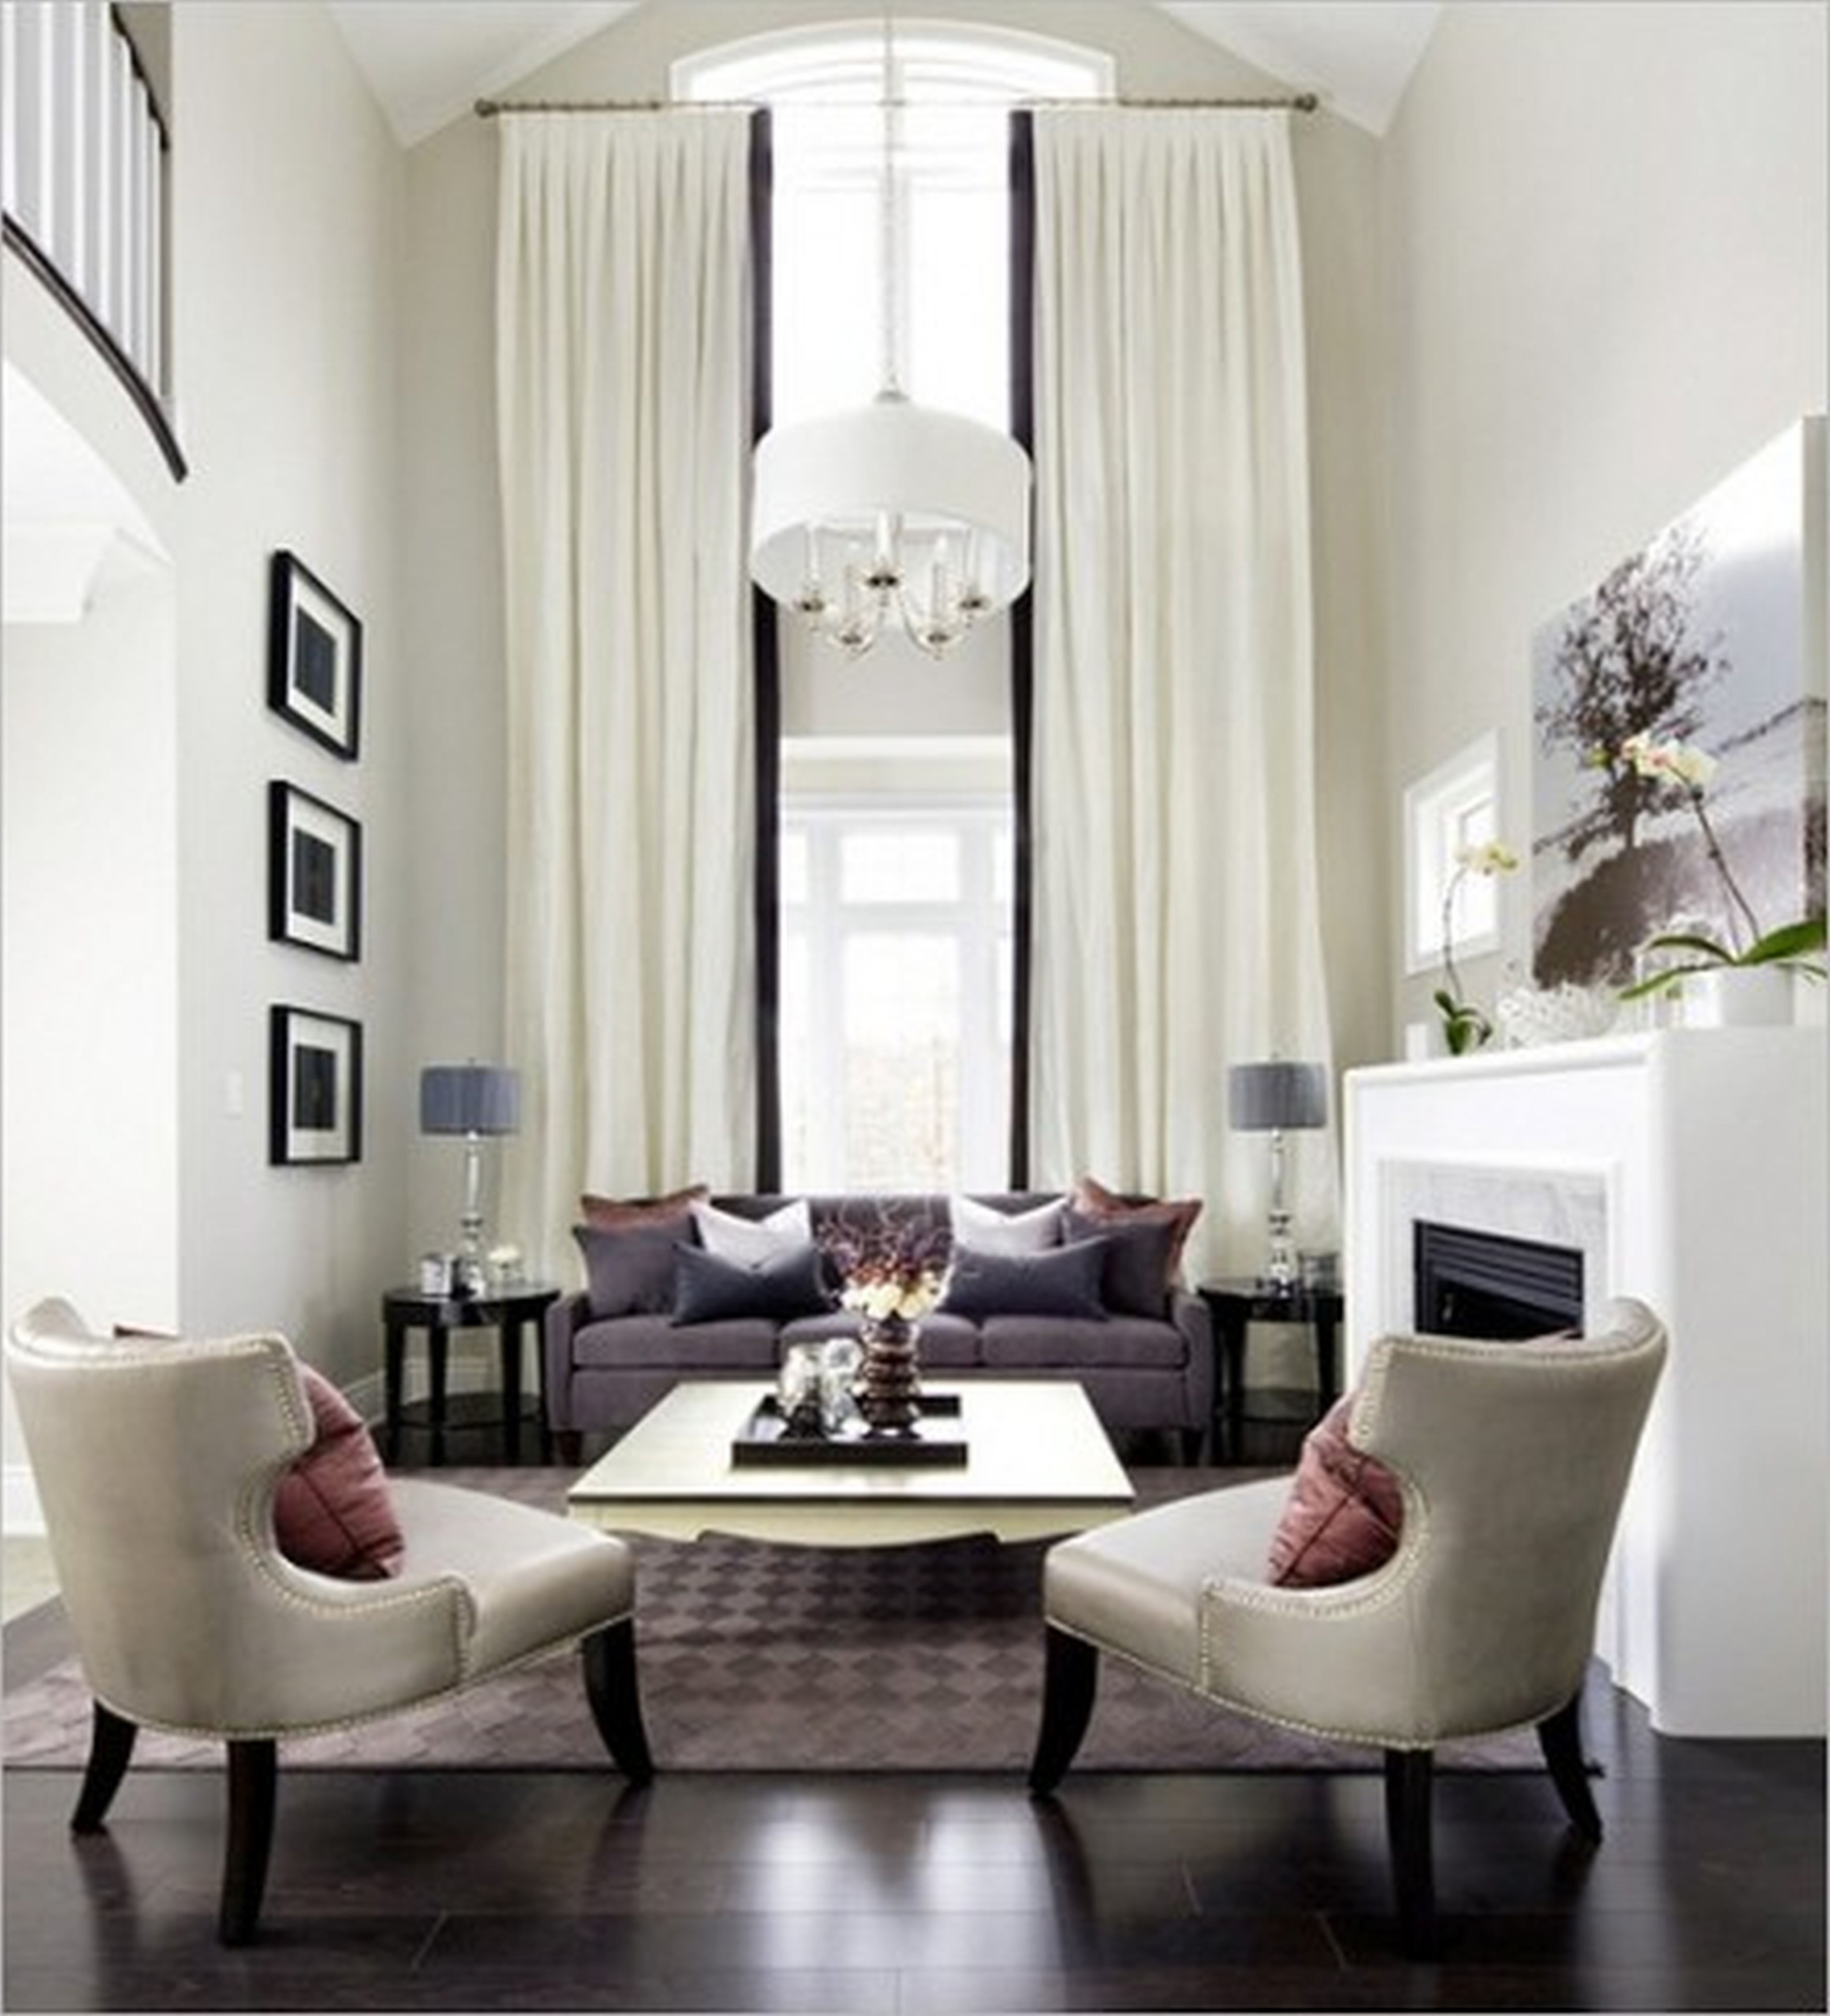 living room two sofas facing each other - Google Search | Ideas for ...